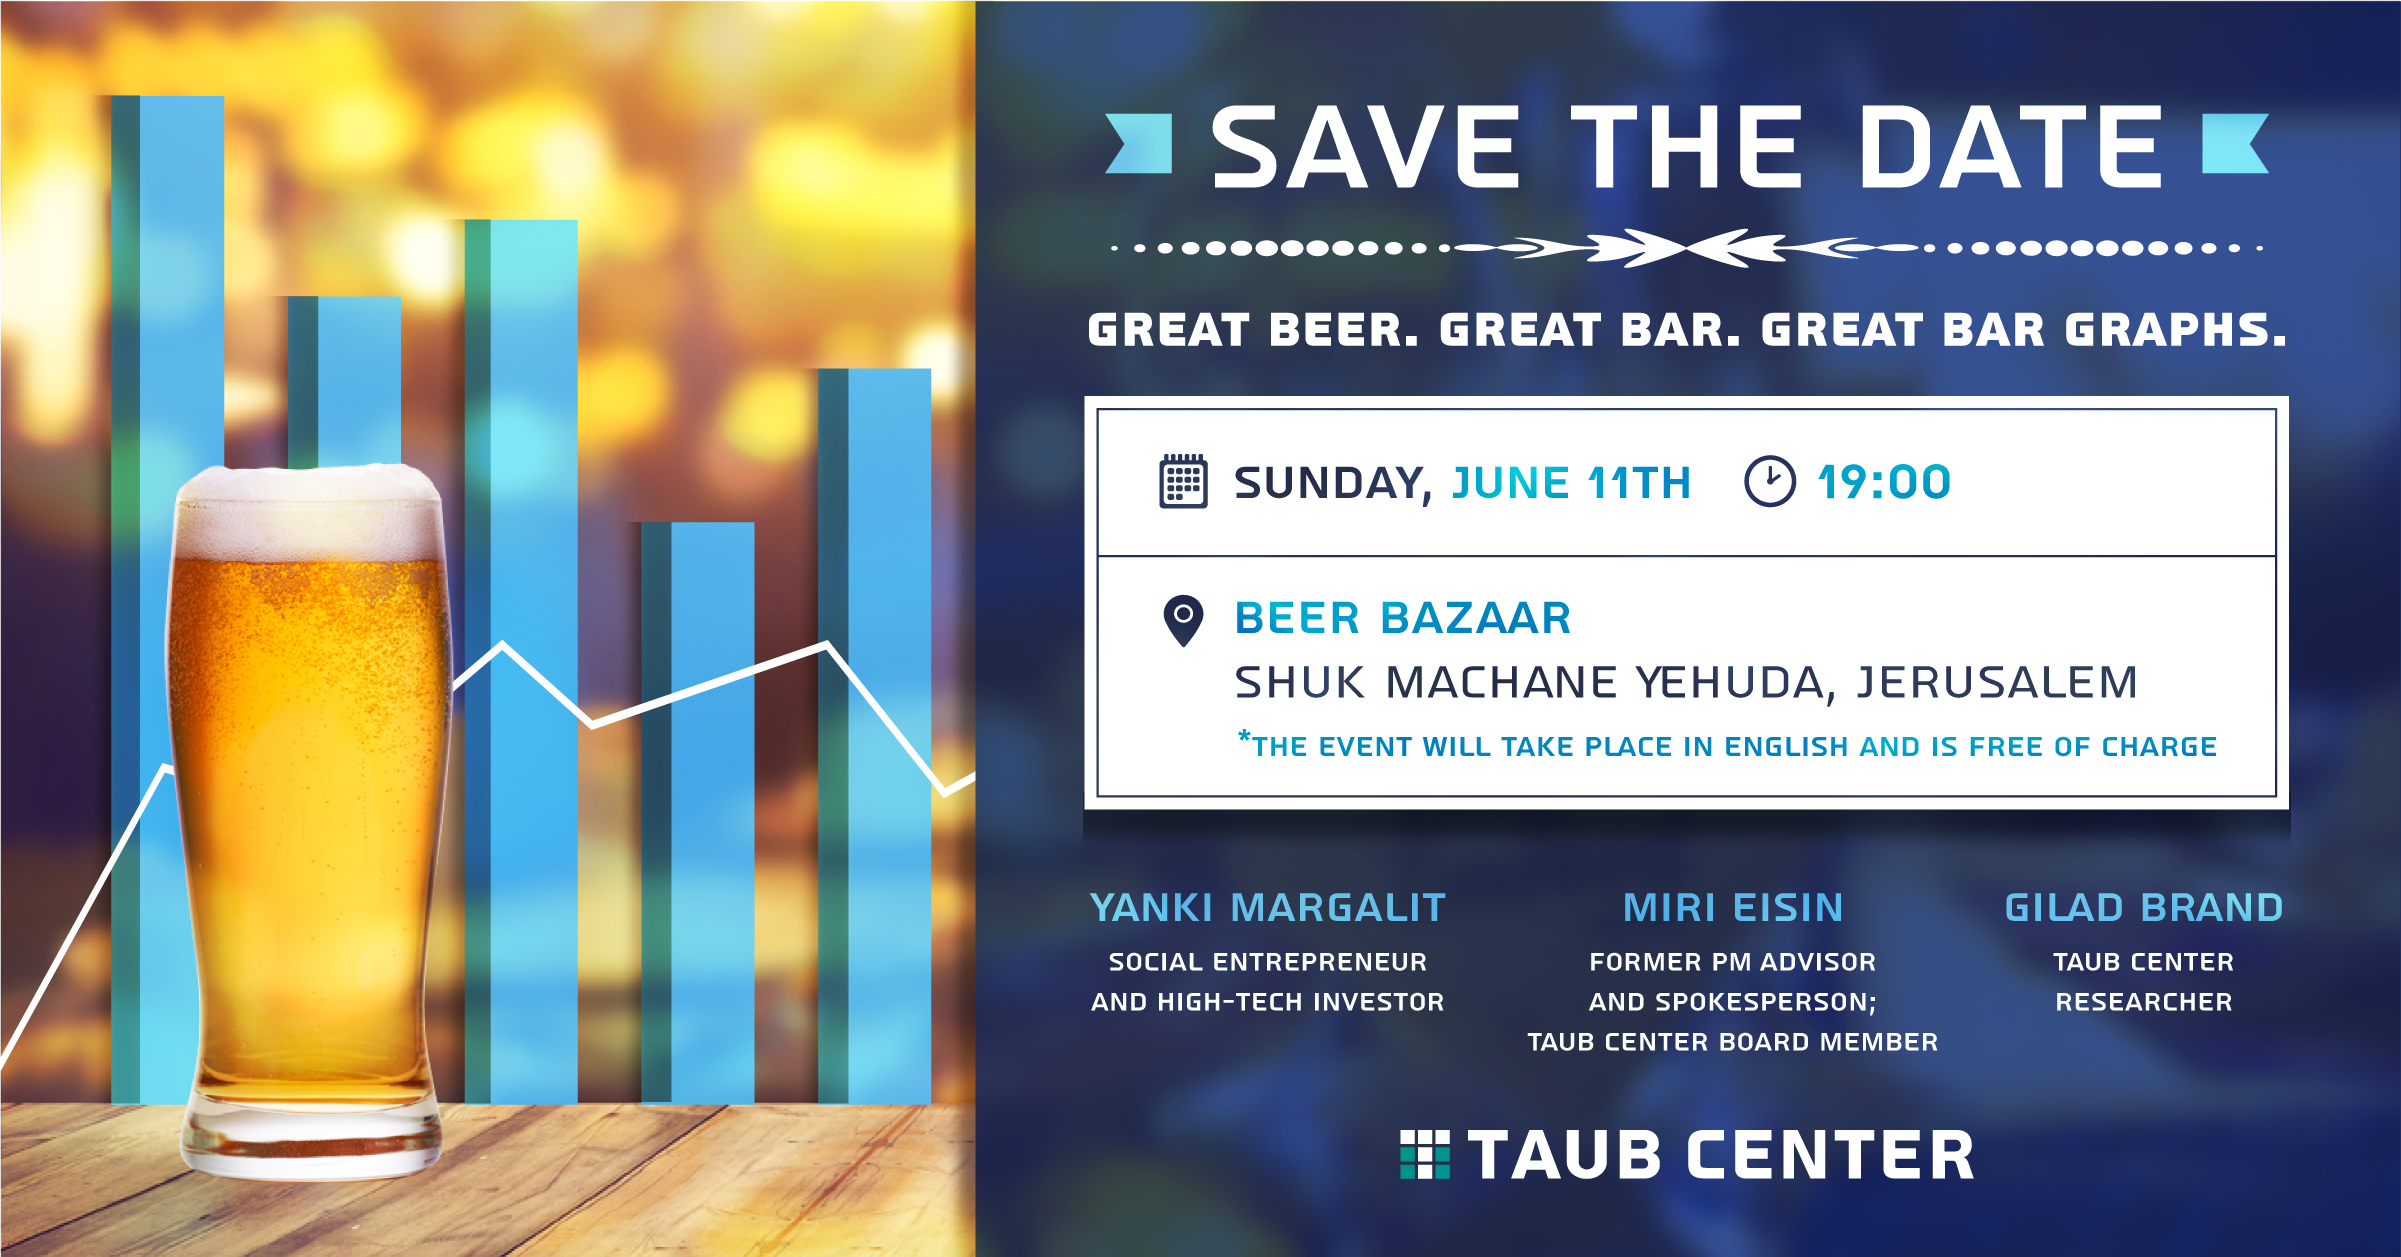 Save the Date - Taub Center Jerusalem Bar Event June 11